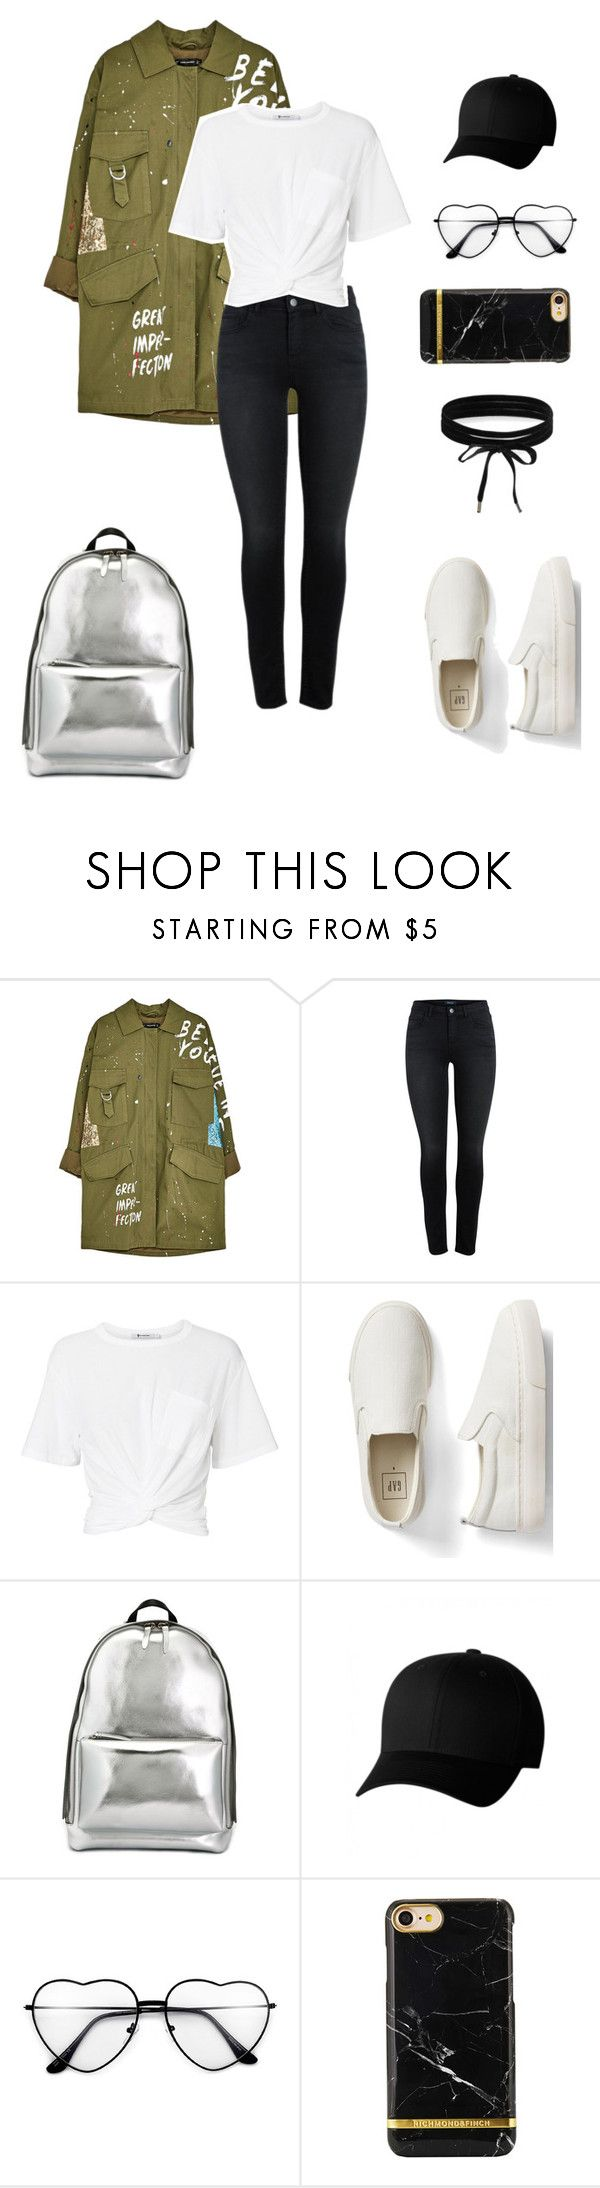 """Untitled #253"" by natalyholly on Polyvore featuring T By Alexander Wang, Gap, 3.1 Phillip Lim, Flexfit and Boohoo"